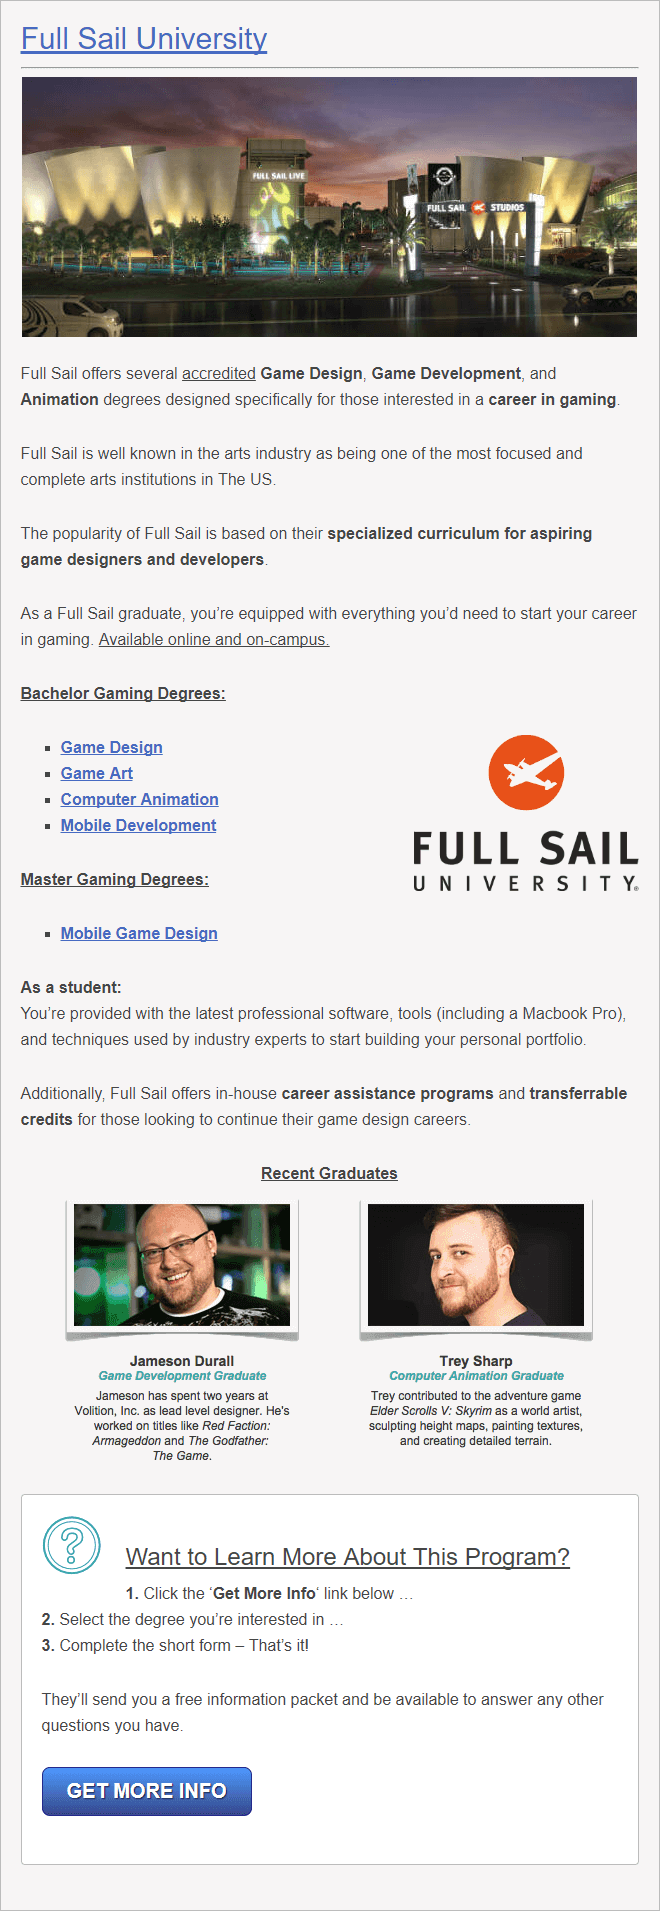 Full Sail University for Game Design